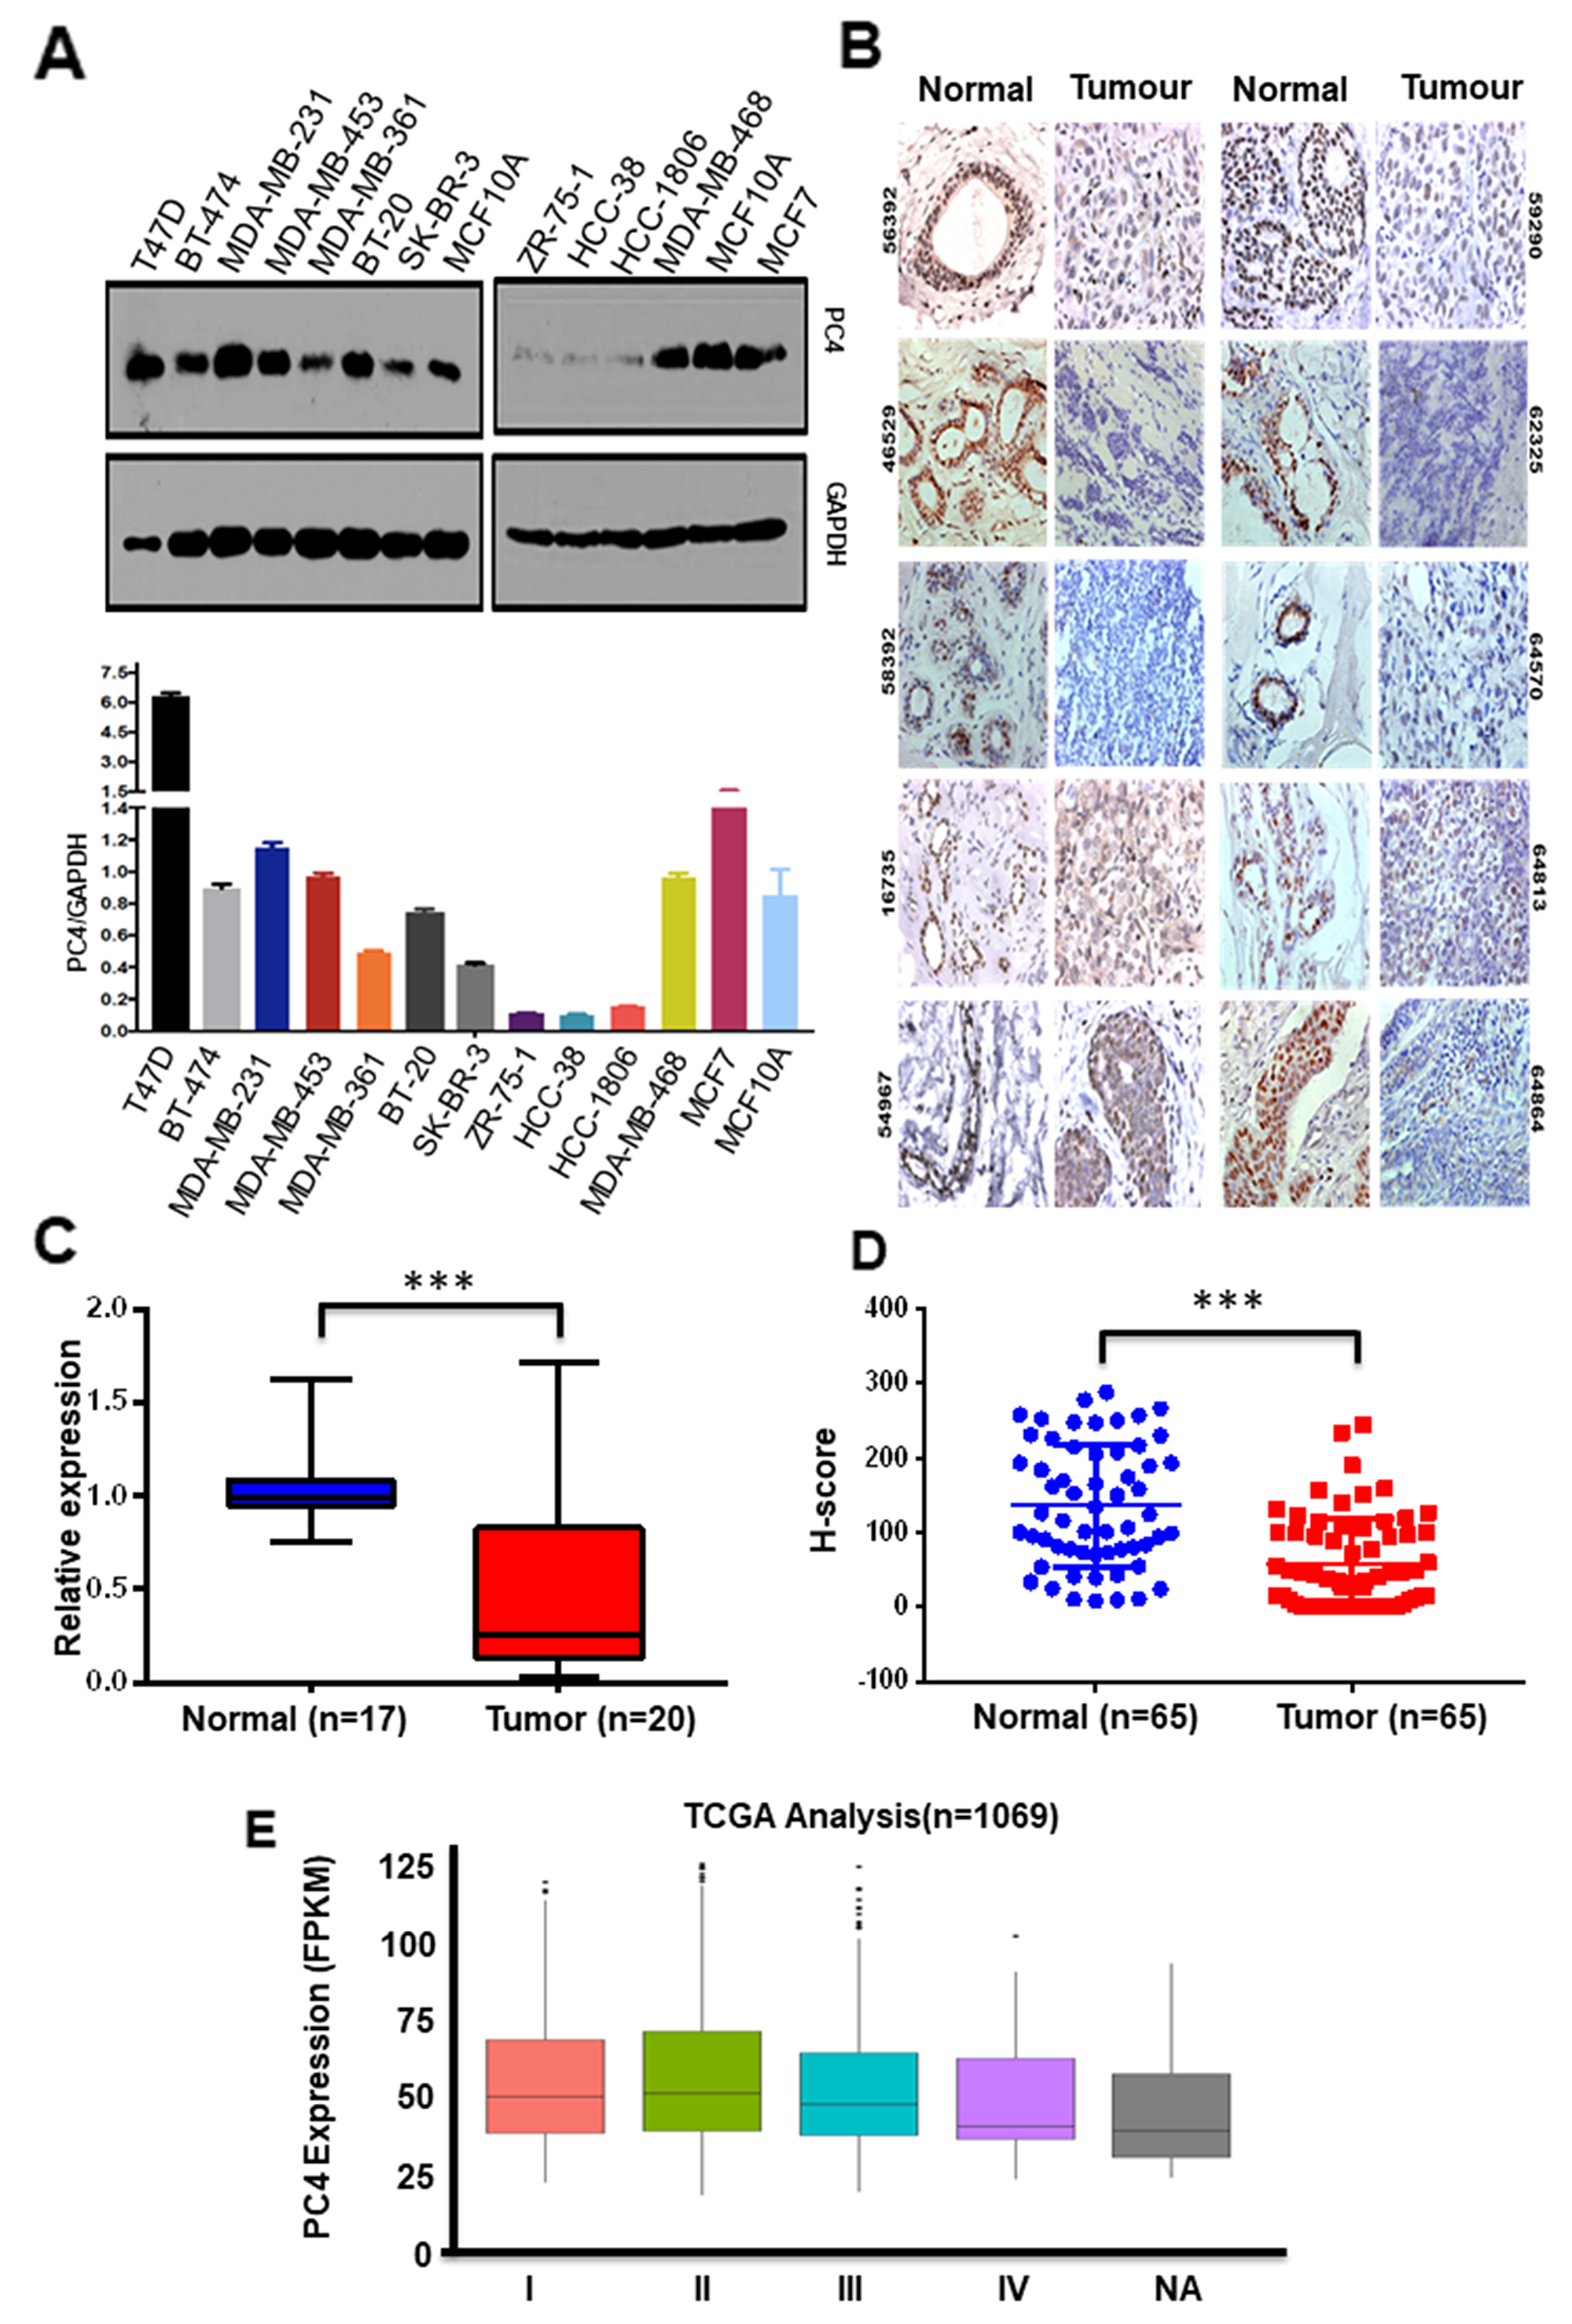 PC4 expression is predominantly downregulated in breast cancer patient samples.